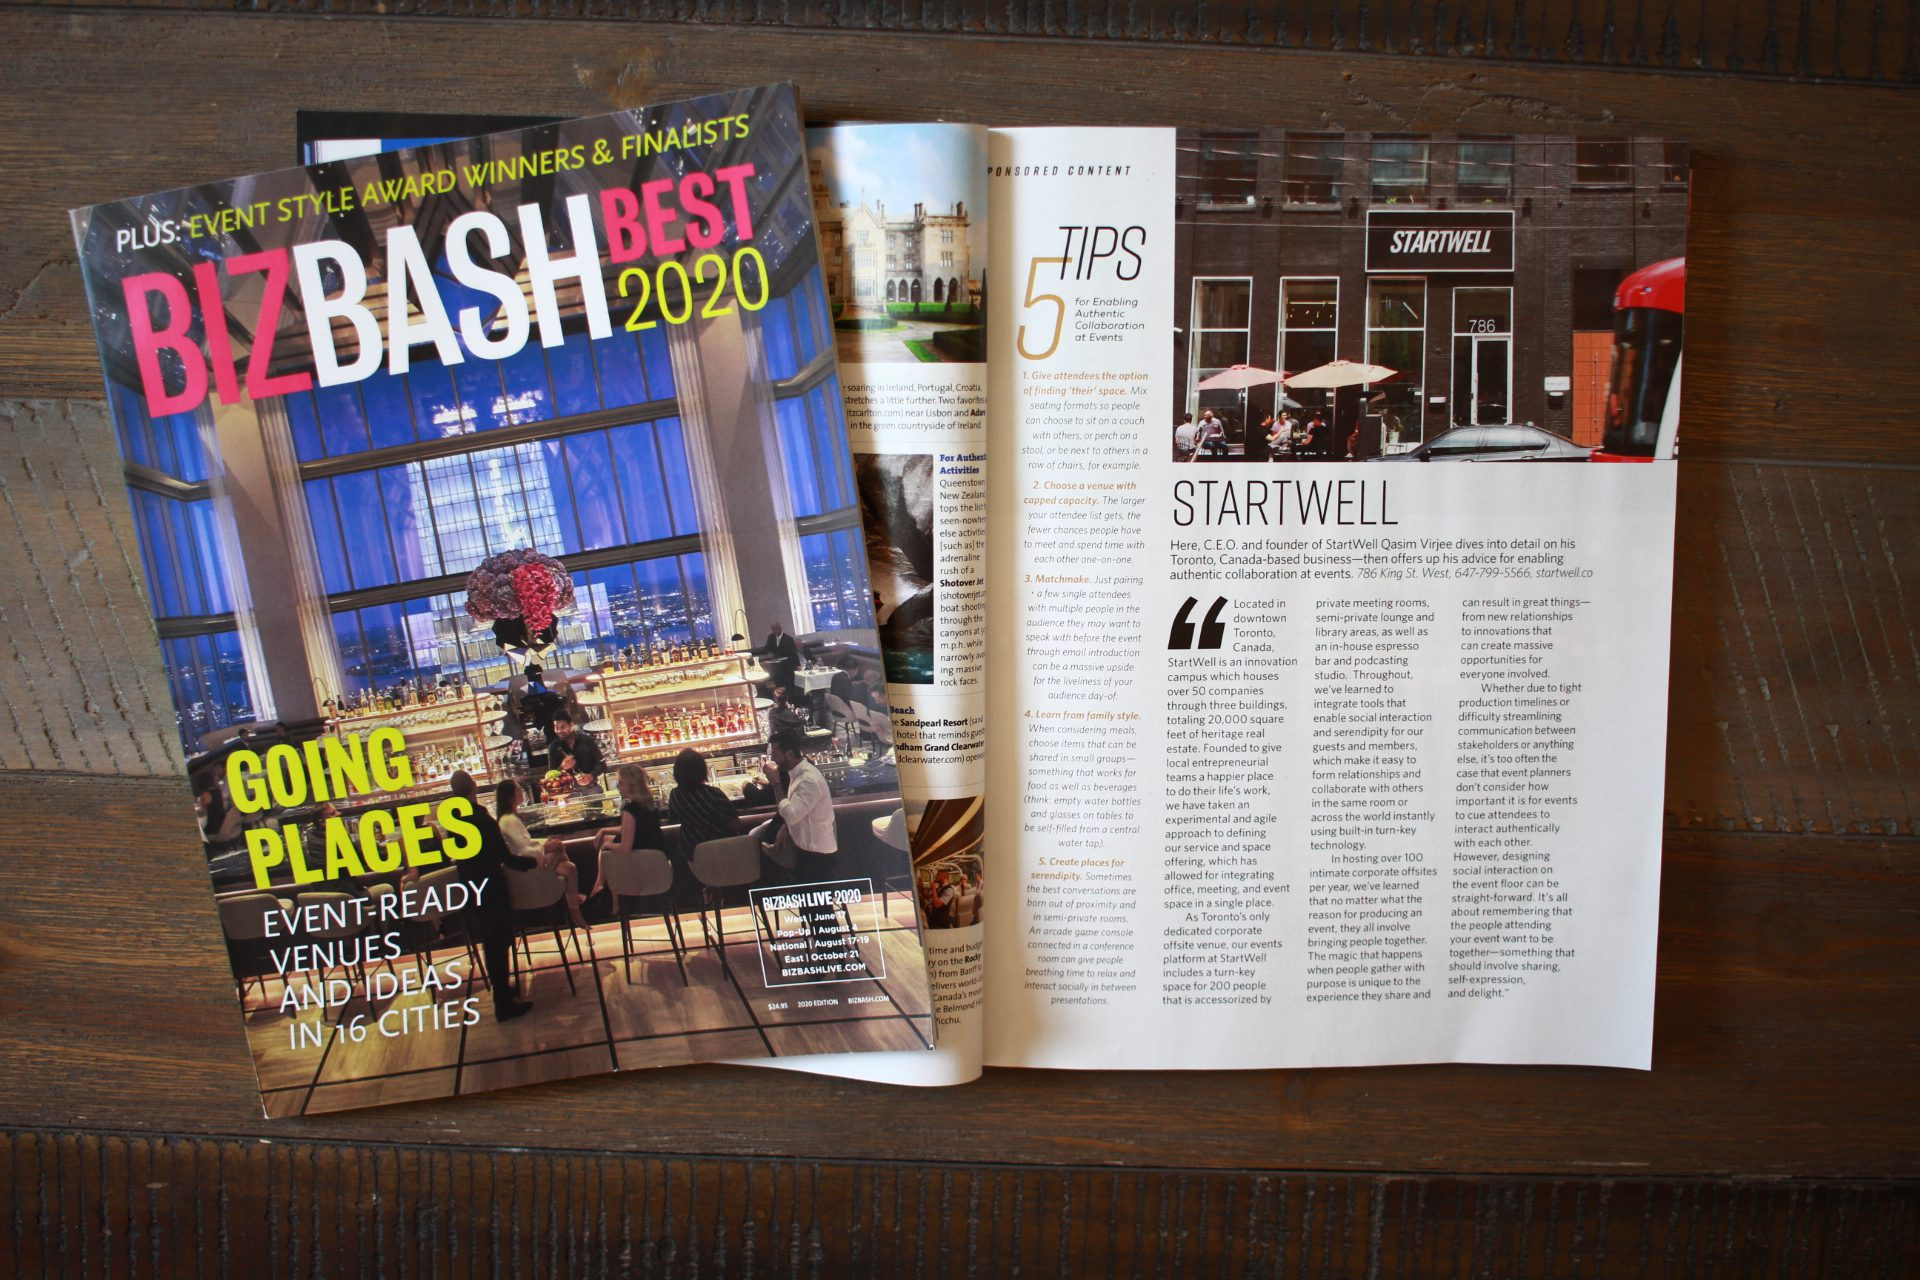 StartWell Event Venue Featured in BizBash Best 2020